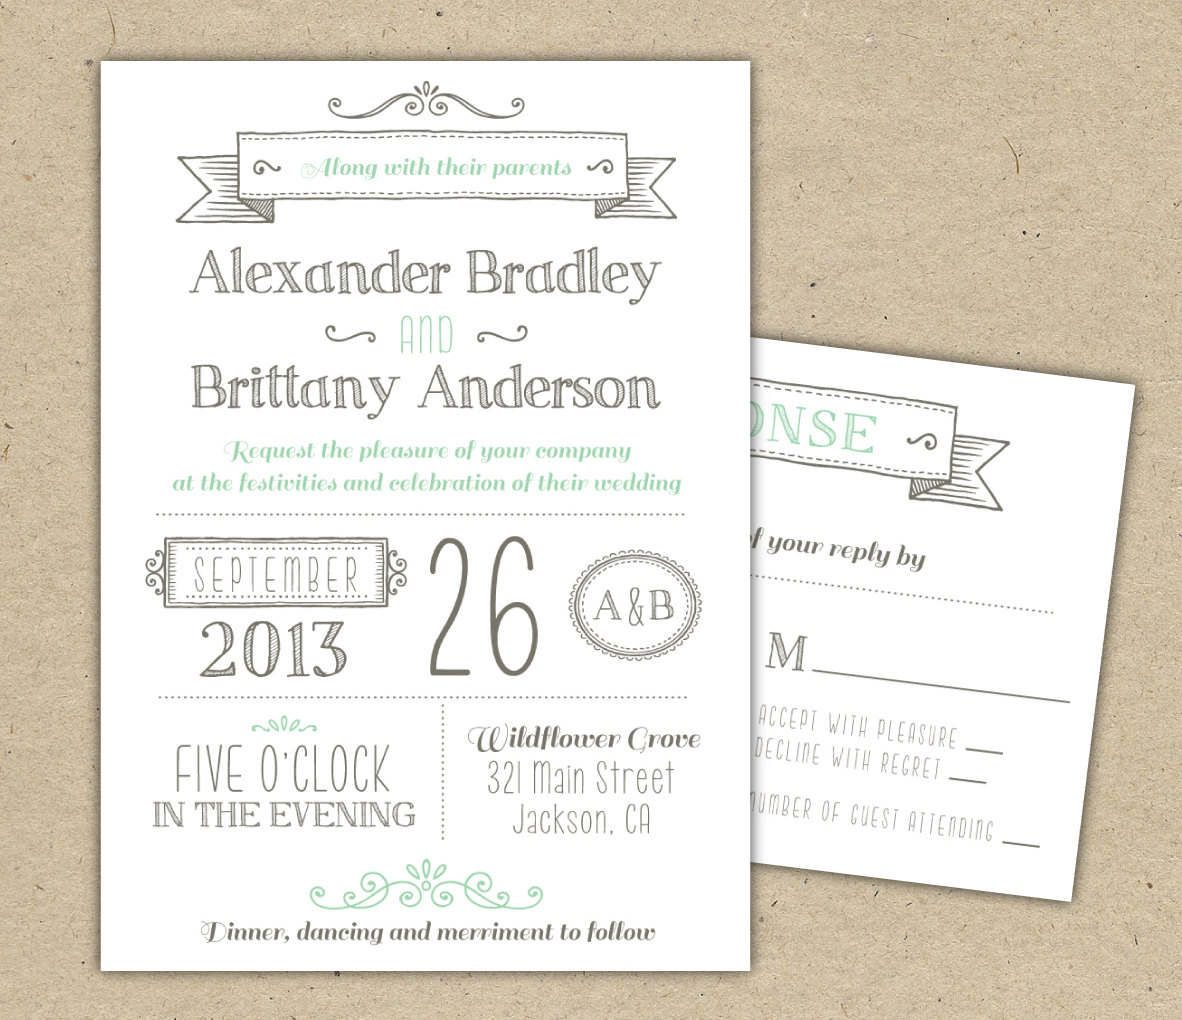 free printable online wedding invitations templates - Yeni.mescale.co